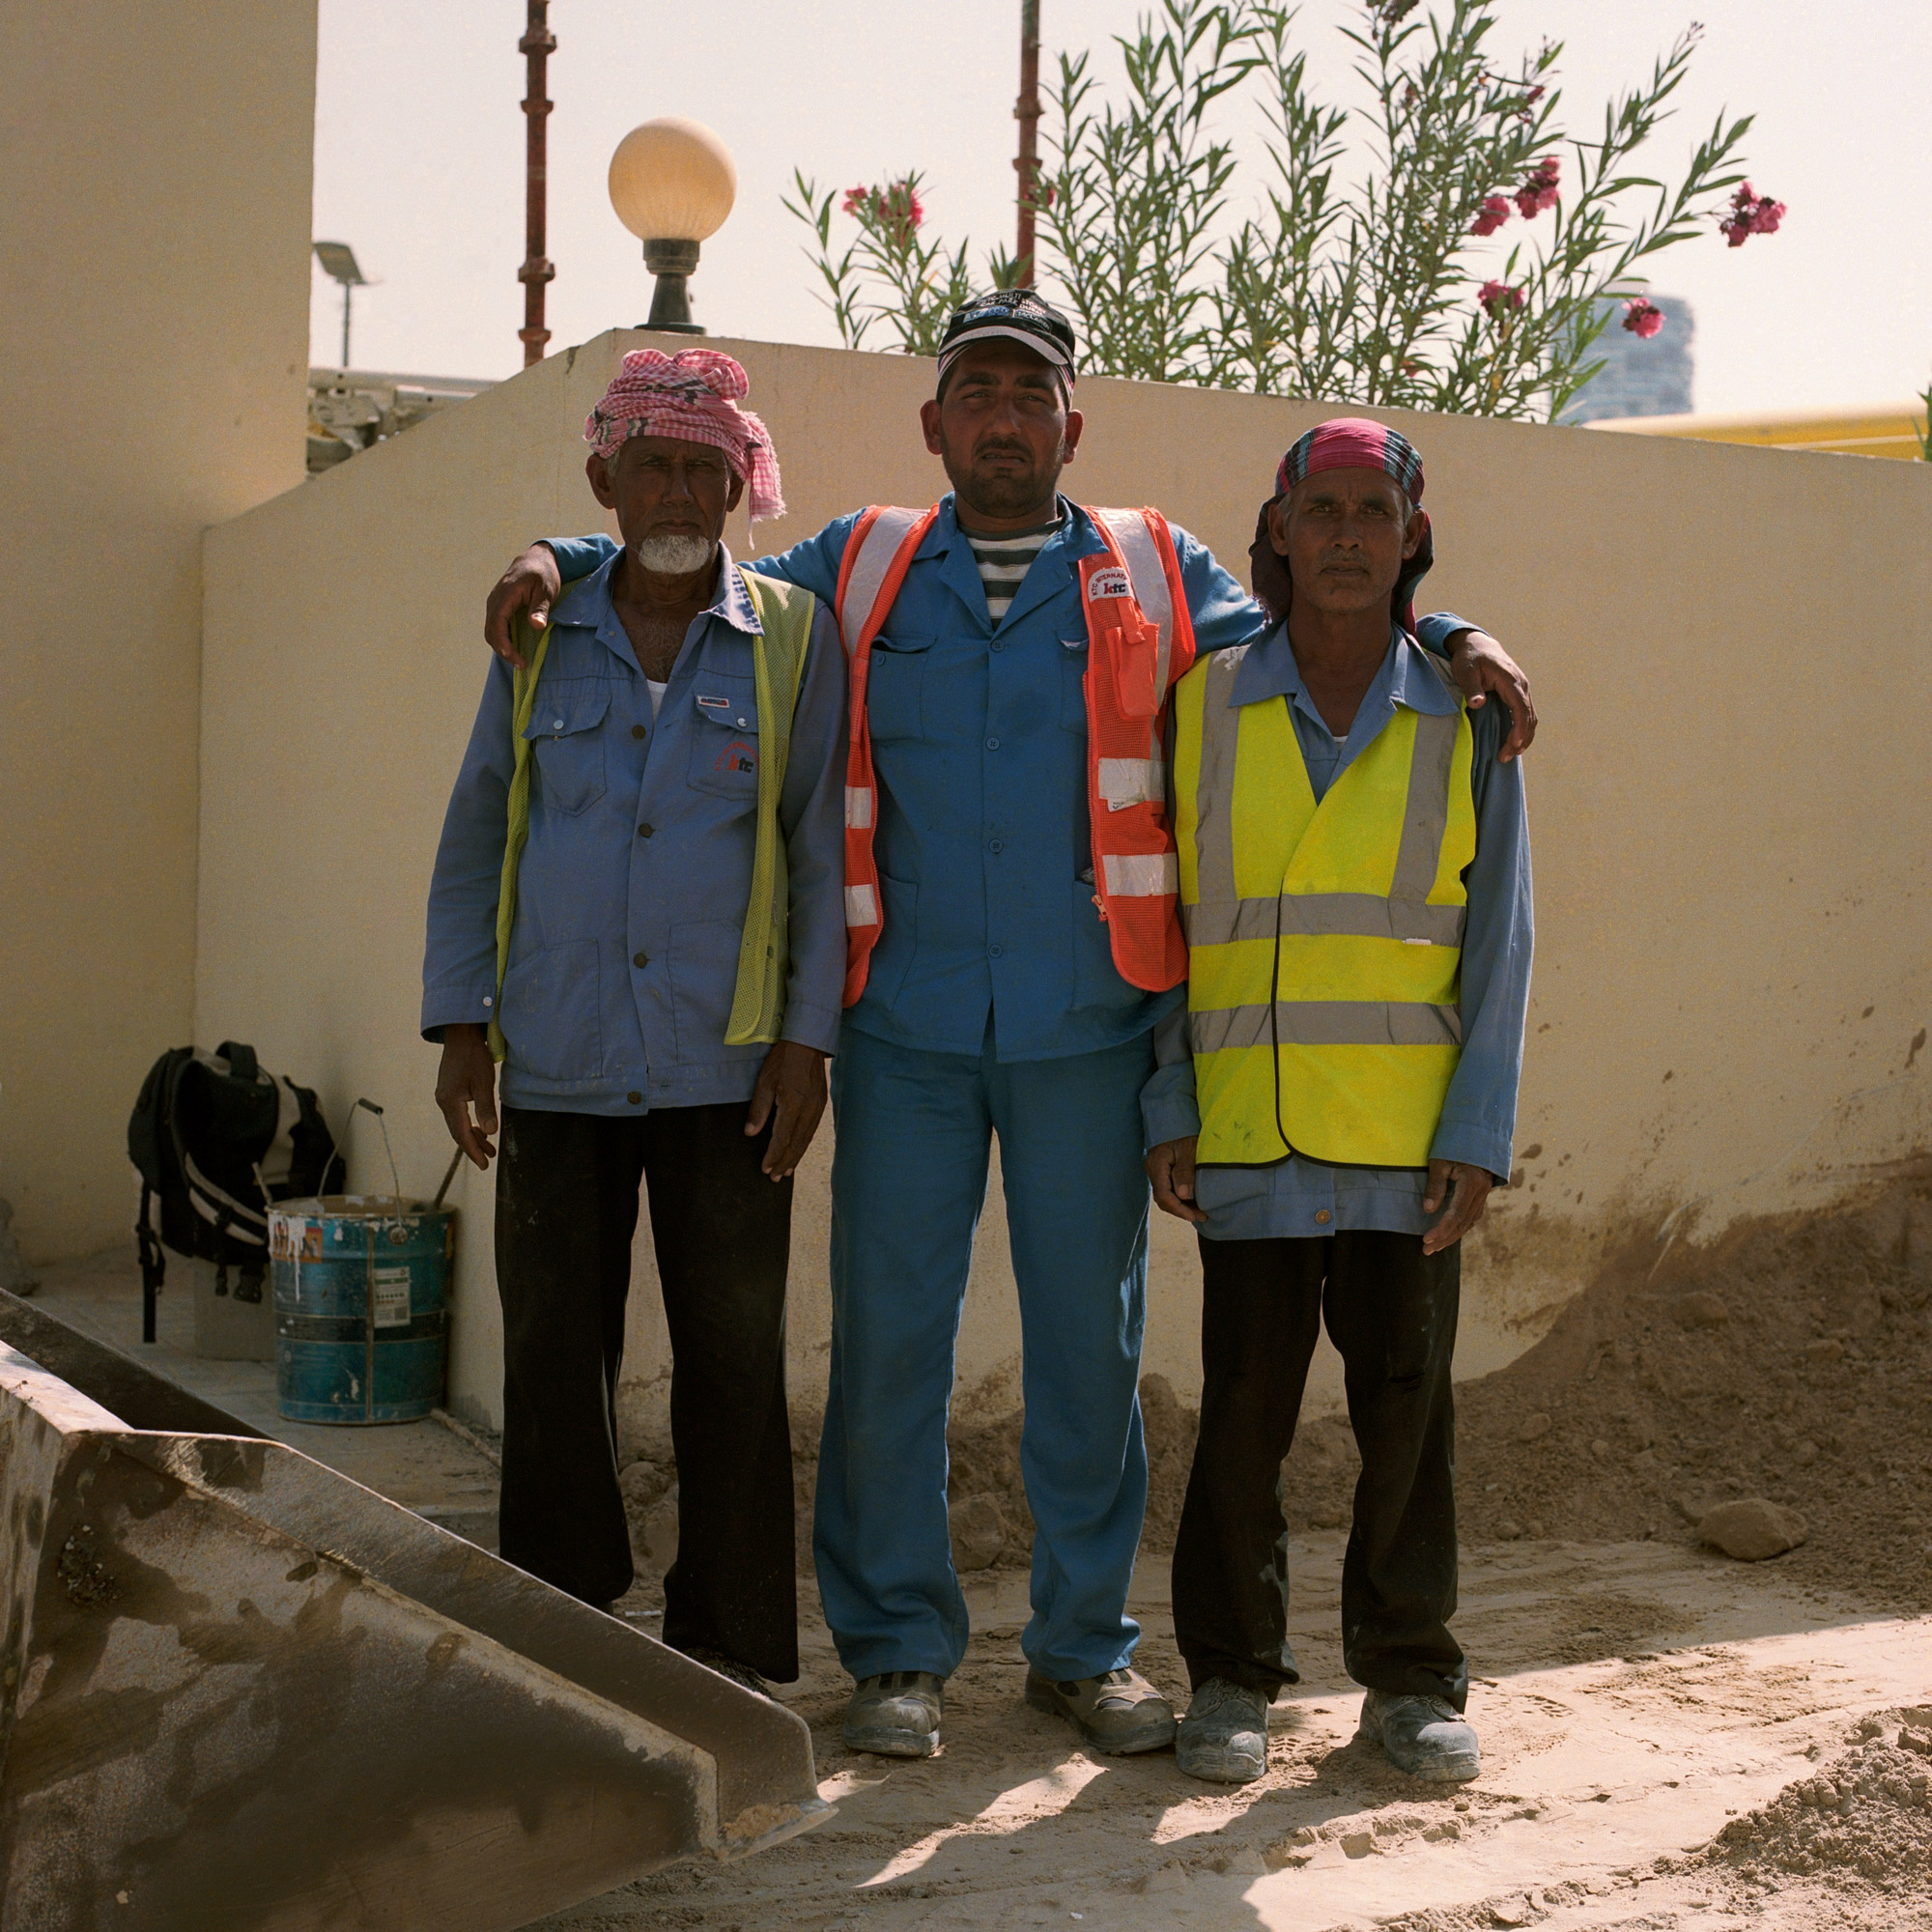 Three Indian construction workers on worksite. Dubai Labourers.